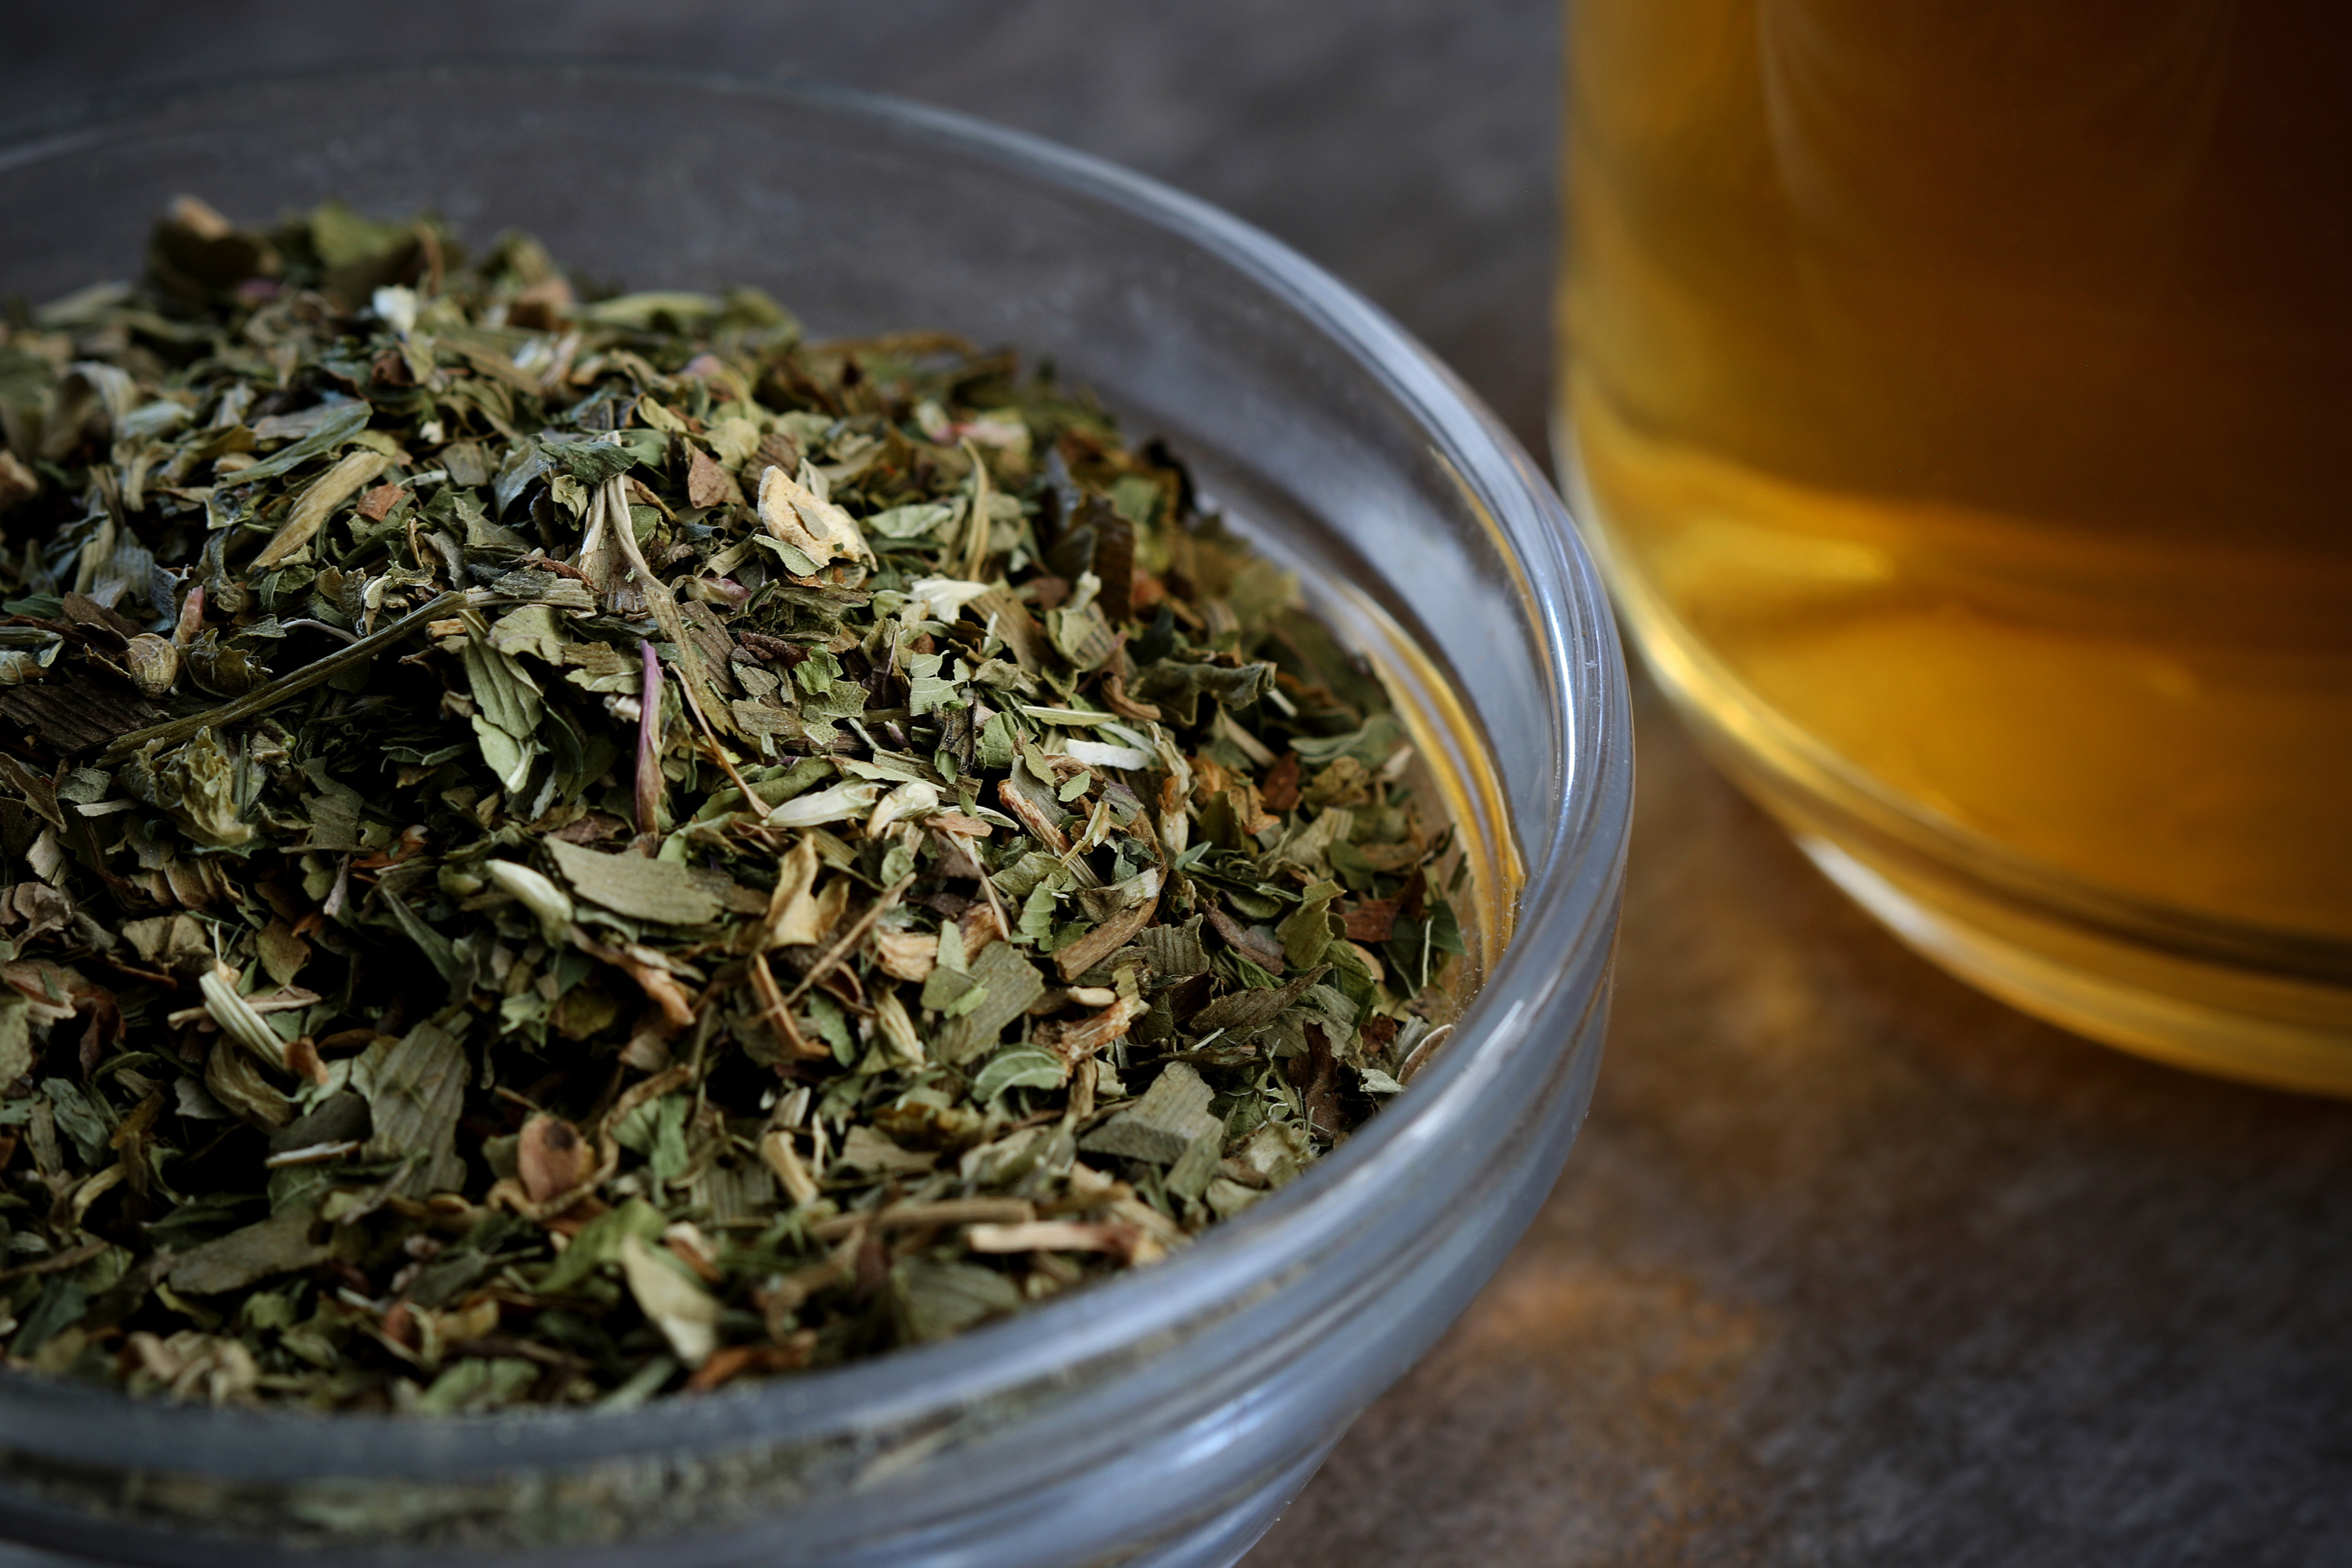 Memory zest tea is a blend of ginkgo biloba, ginger root, gotu kola, red clover herb, peppermint, and rosemary. It helps with memory and brain functioning, and taste minty too.